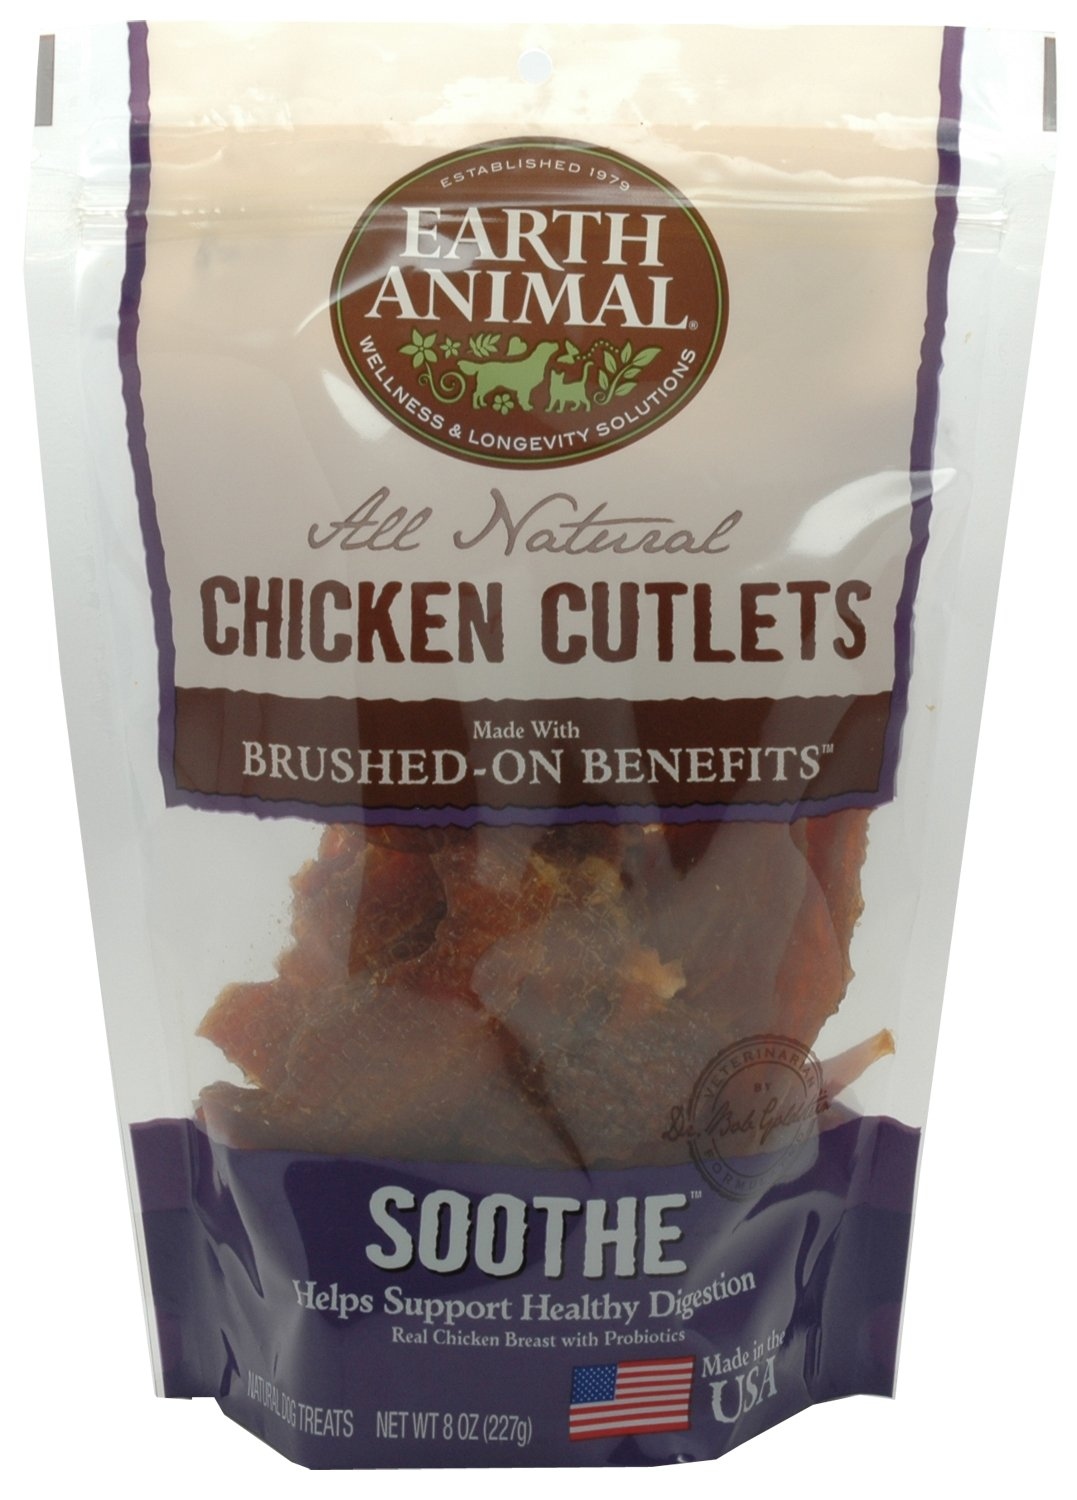 Earth Animal Brushed on Benefits All Natural Chicken Cutlets, Soothe Healthy Digestion, 8oz Bag